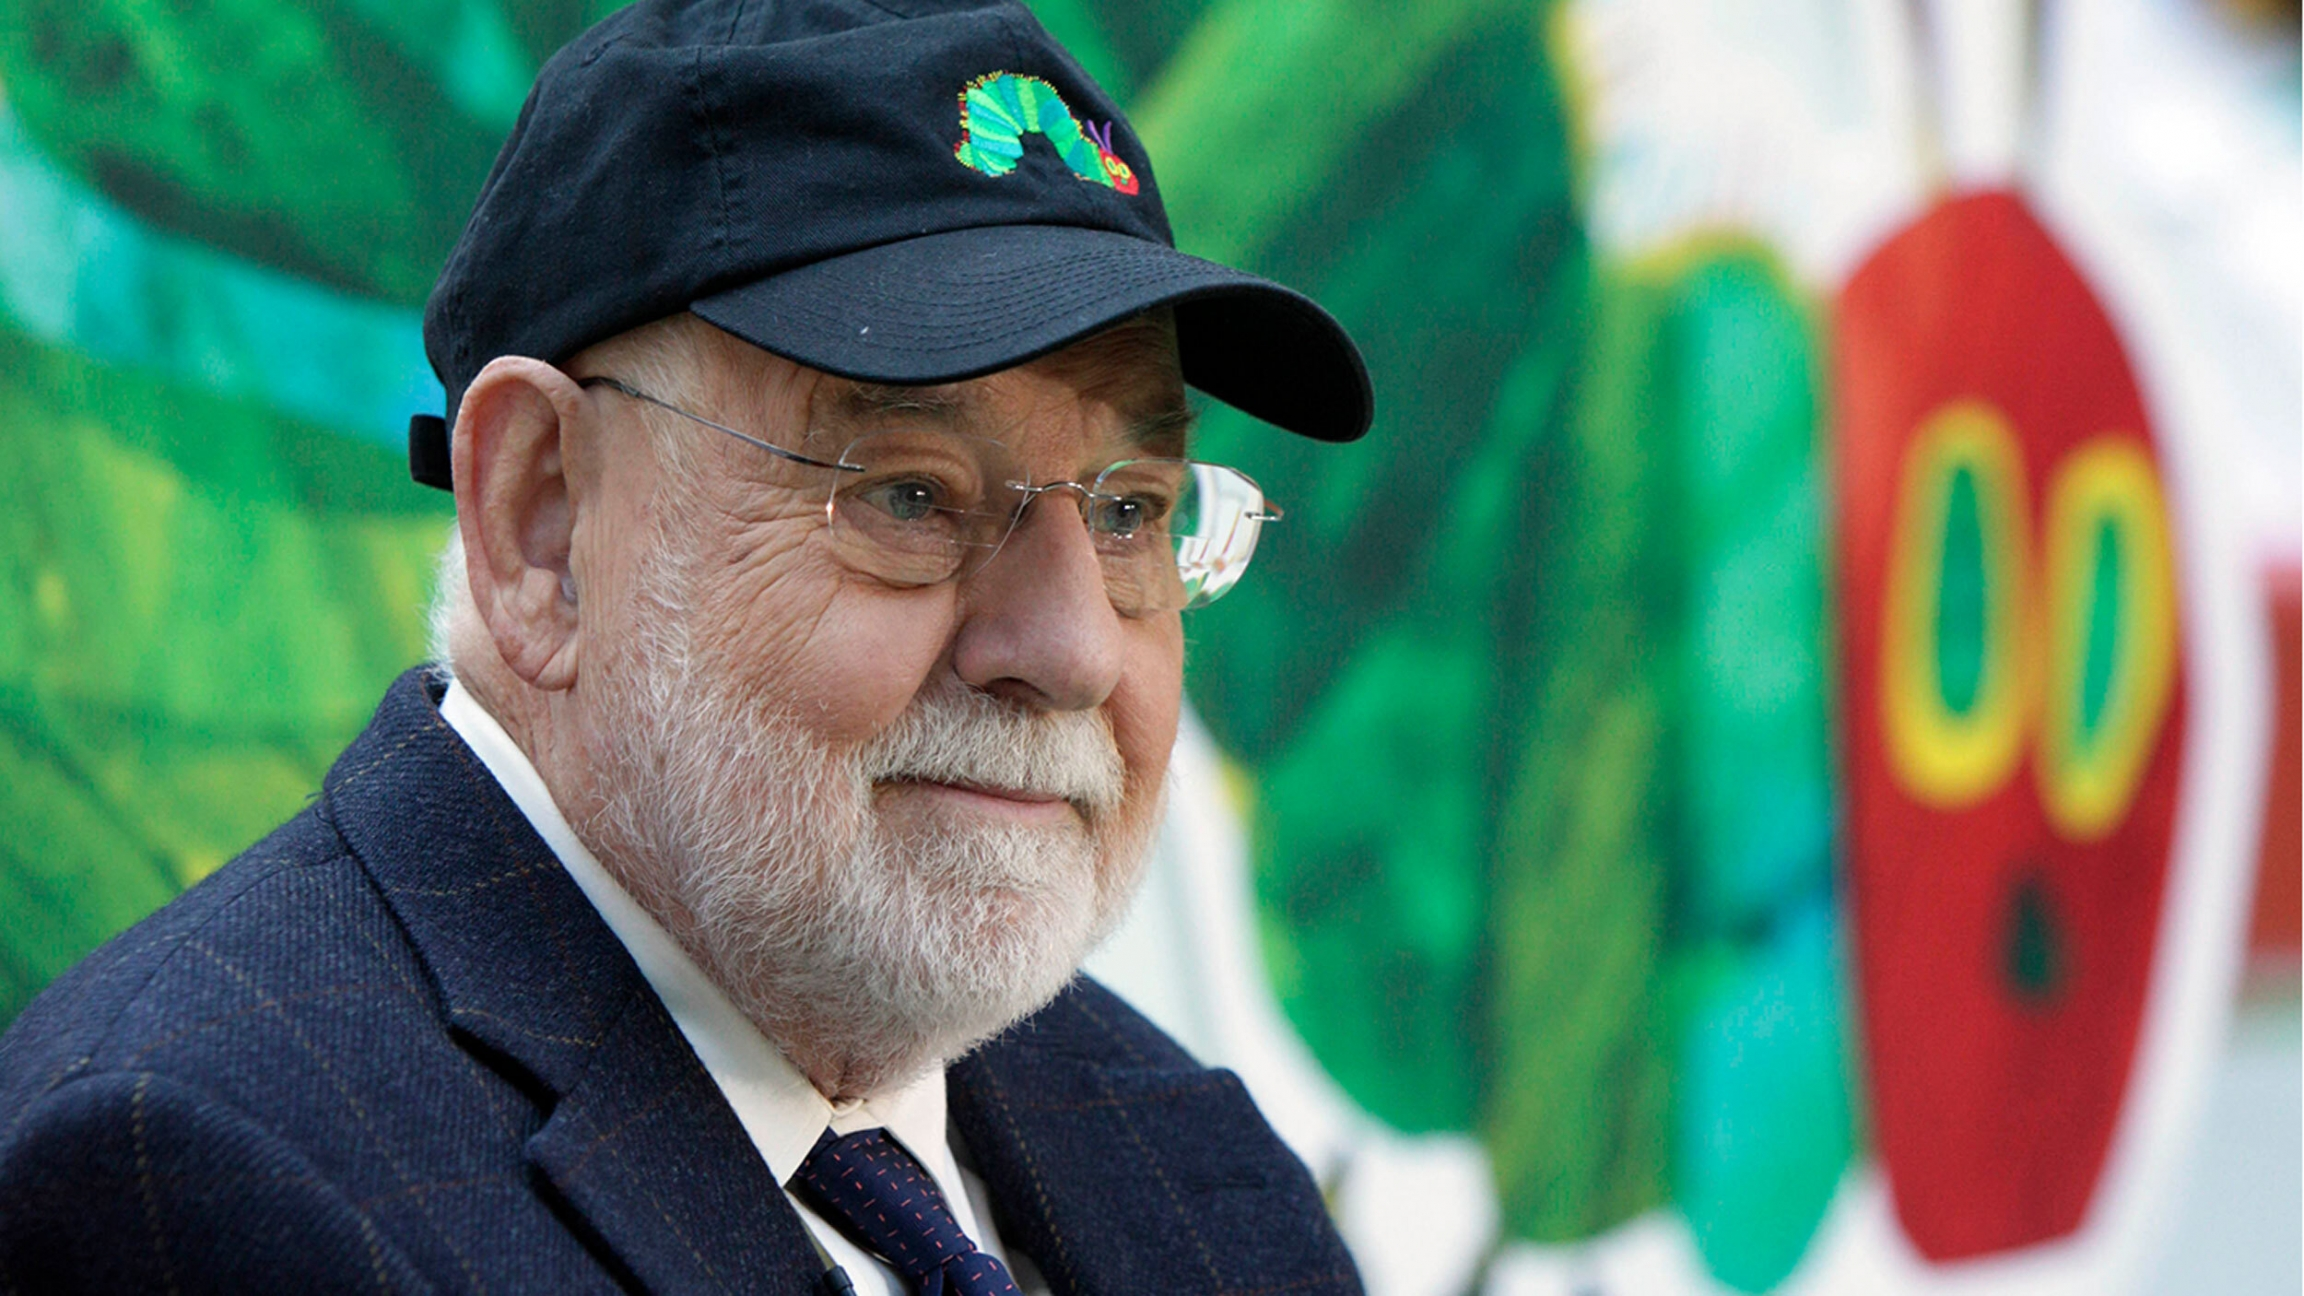 Author Eric Carle is shown with a white beard and warding a suit, tie and baseball hat.